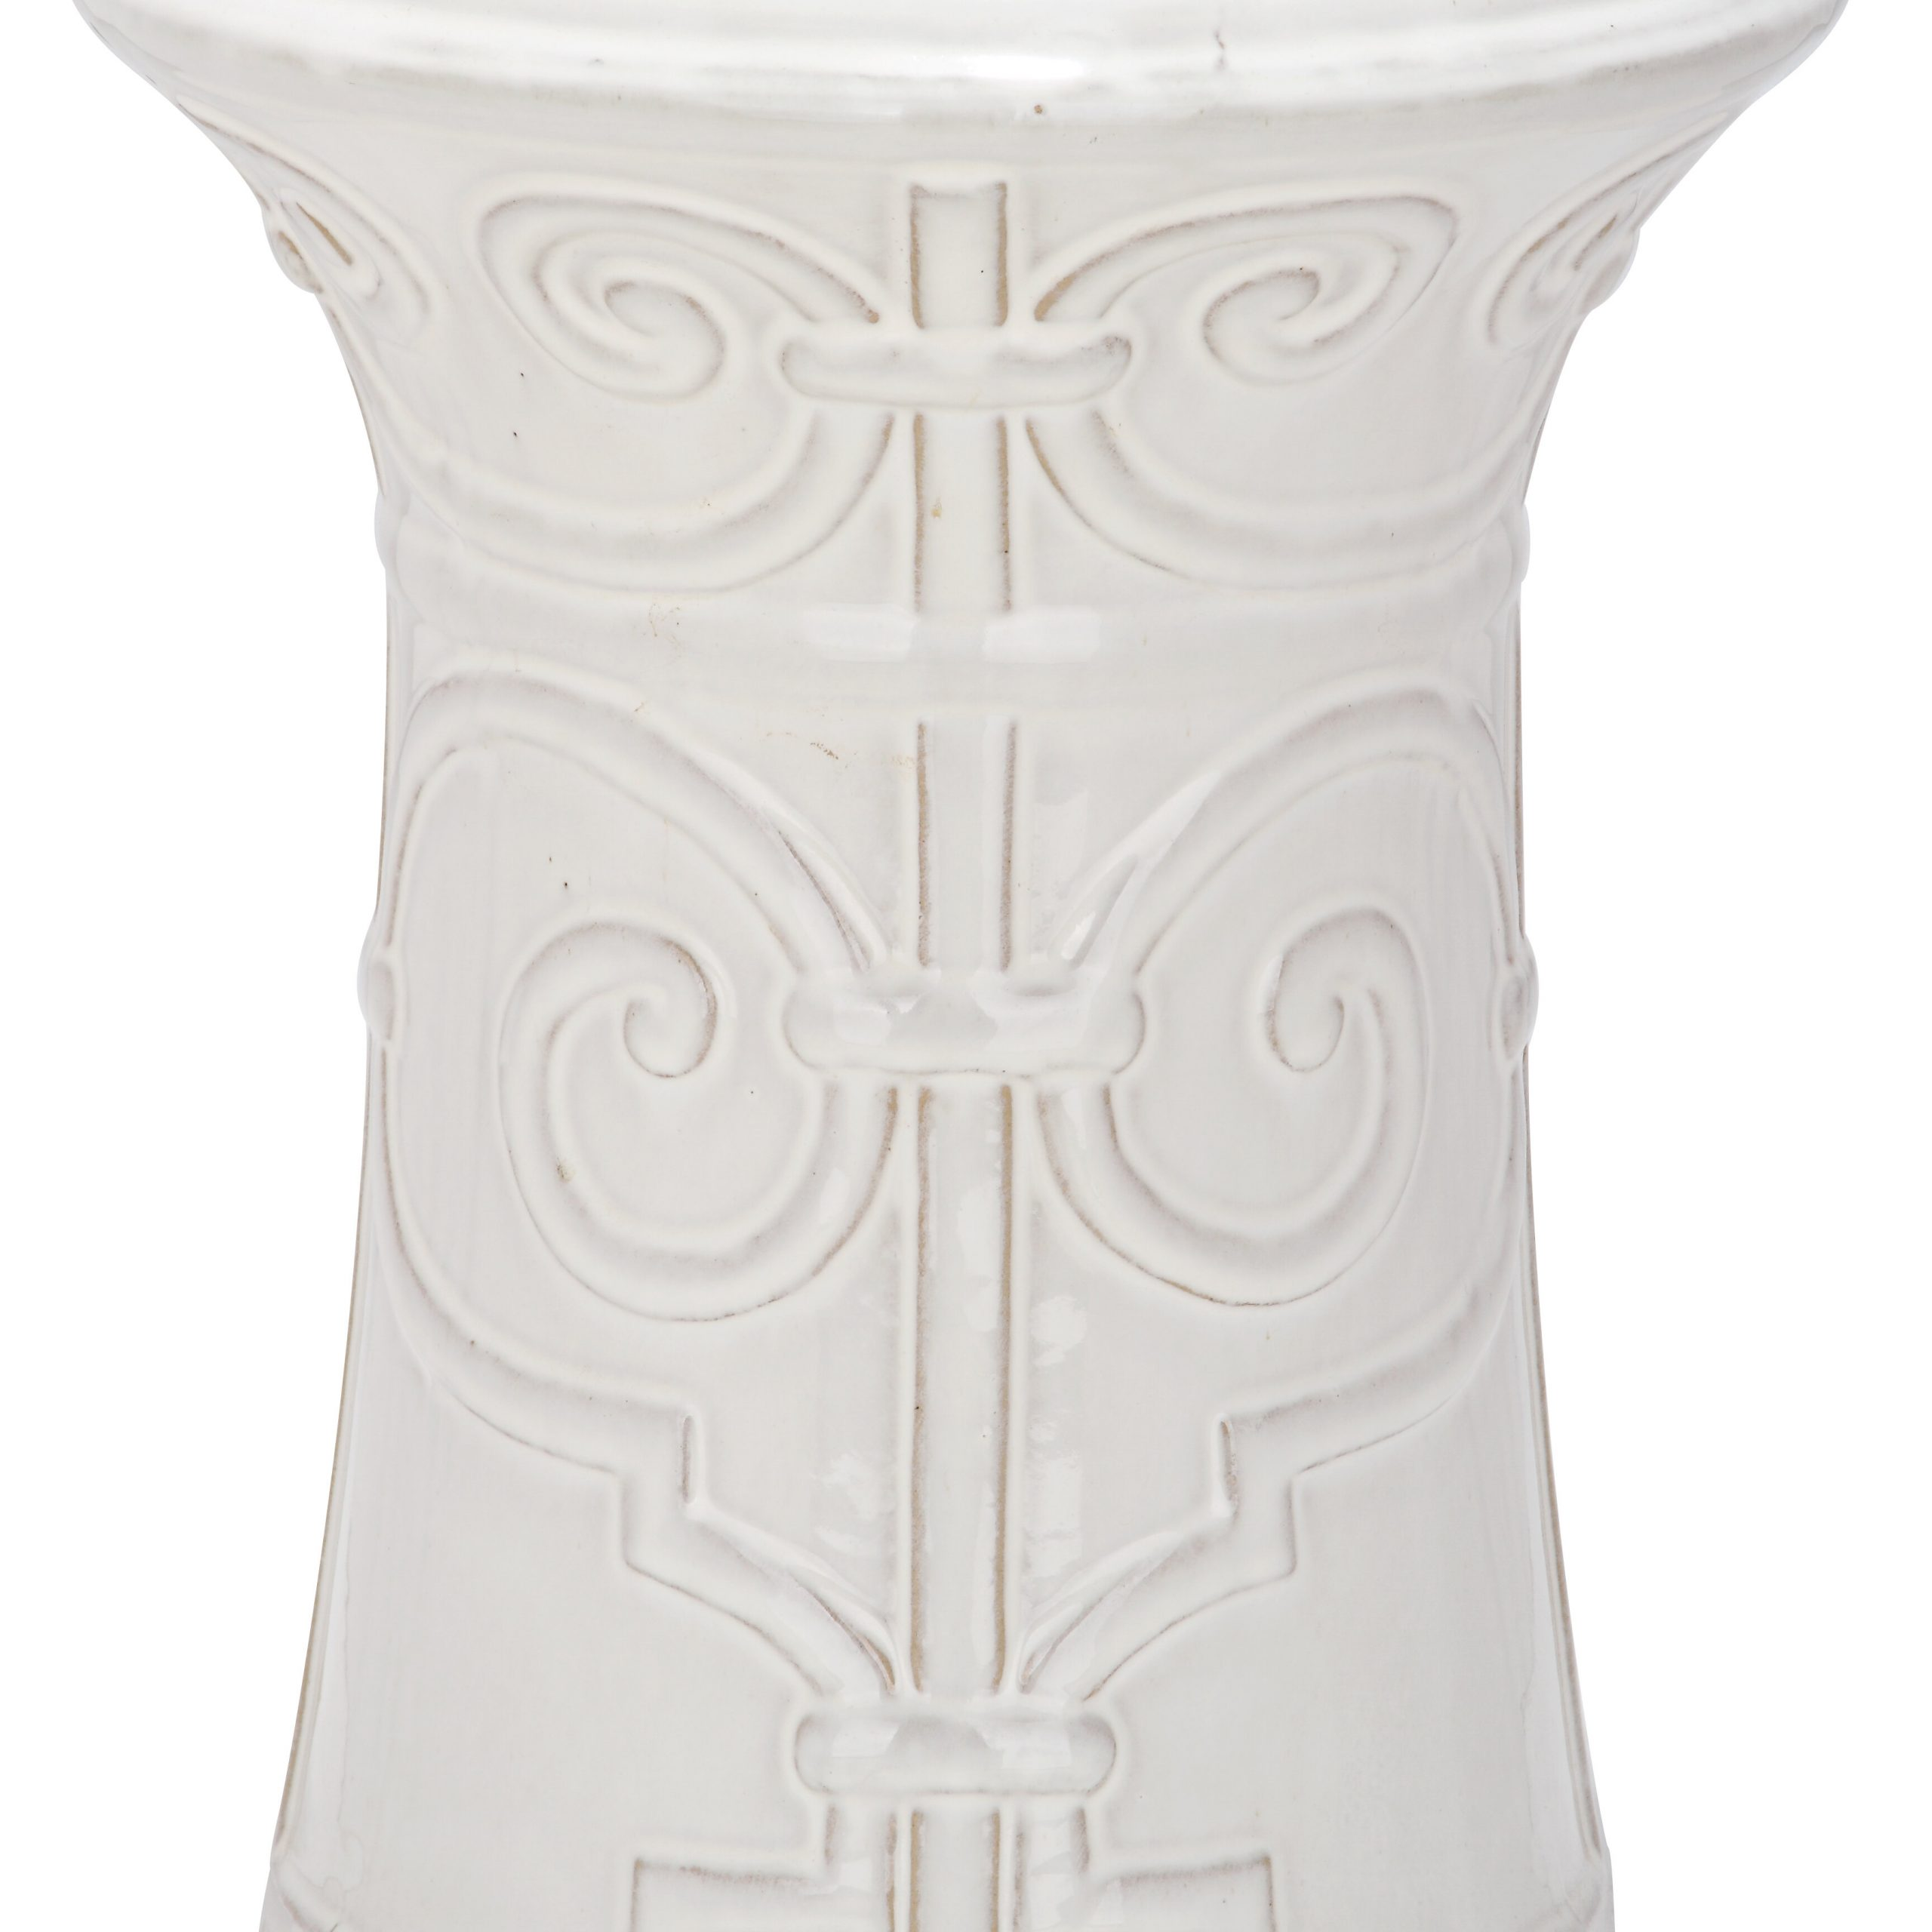 Imperial Ceramic Garden Stool With Regard To Middlet Owl Ceramic Garden Stools (View 3 of 25)